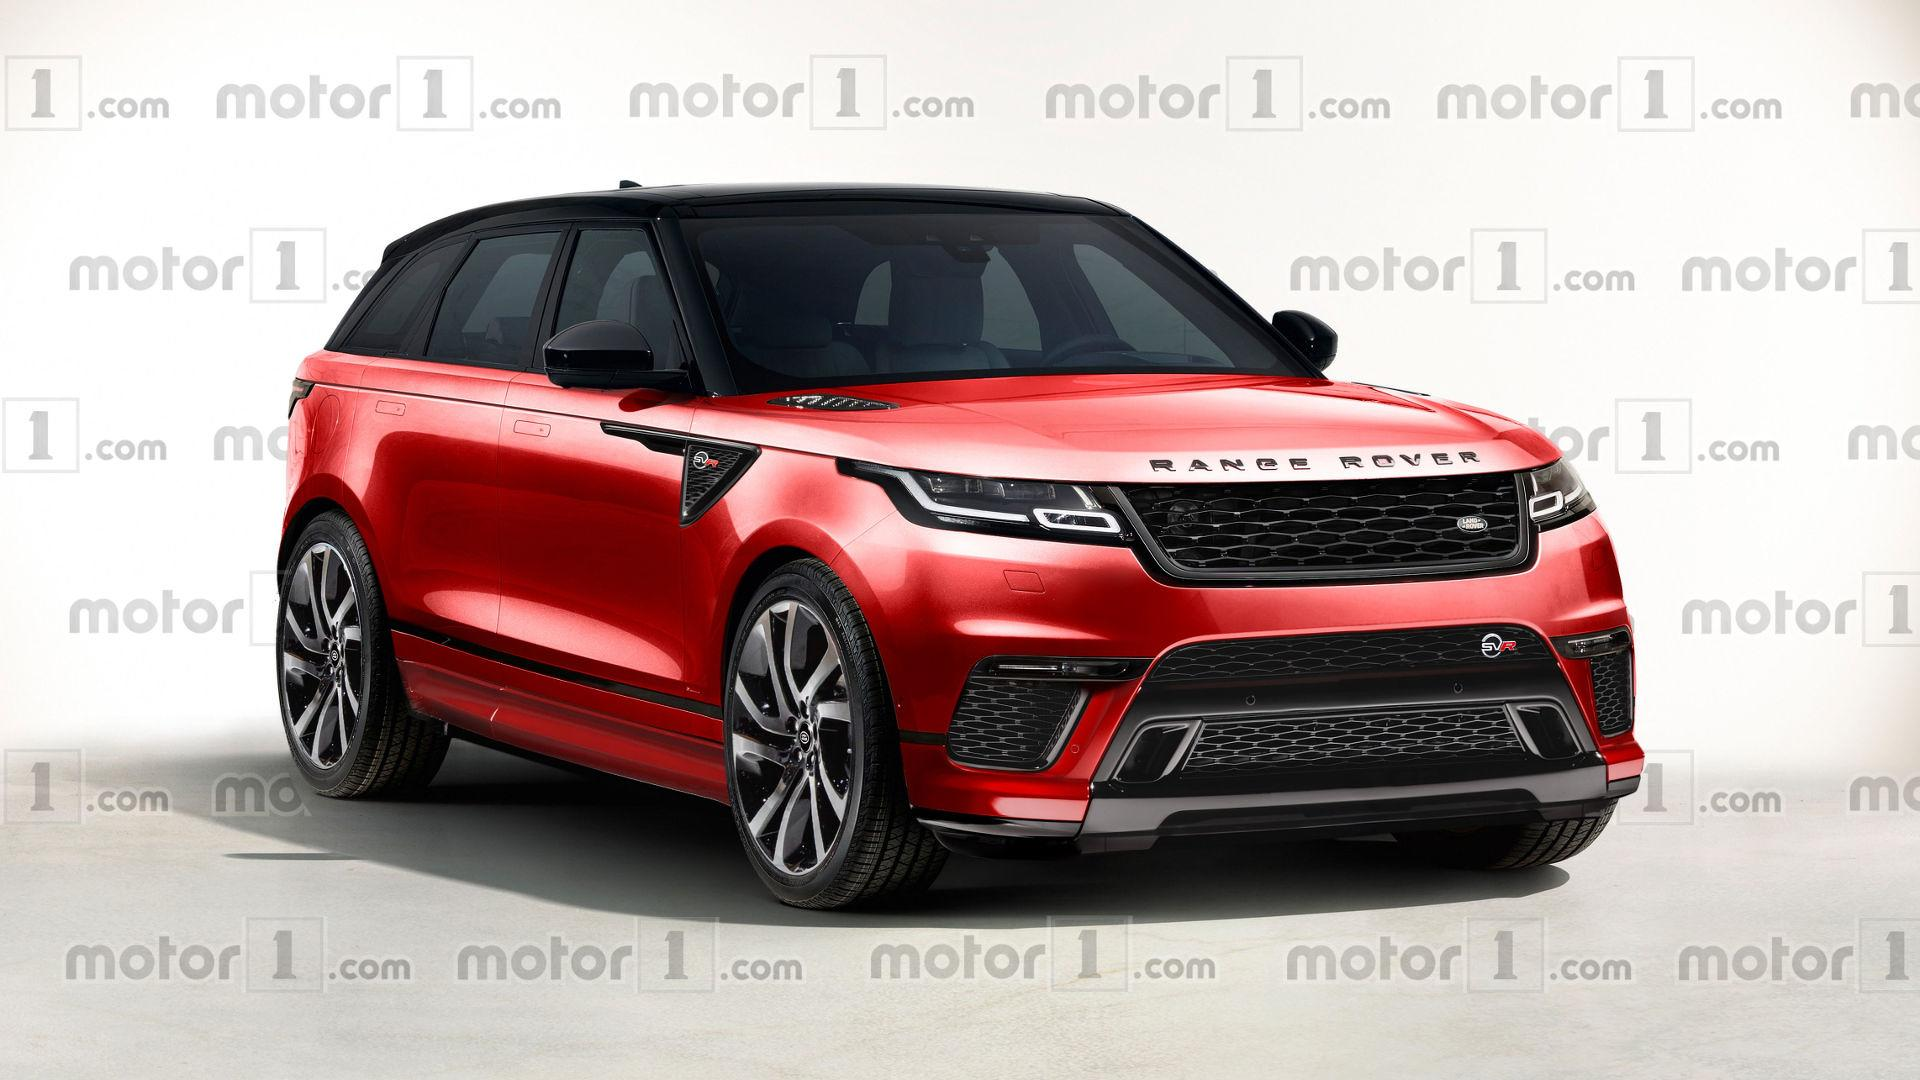 Range Rover Svr For Sale >> We Can Only Hope The Range Rover Velar SVR Will Look This Nice